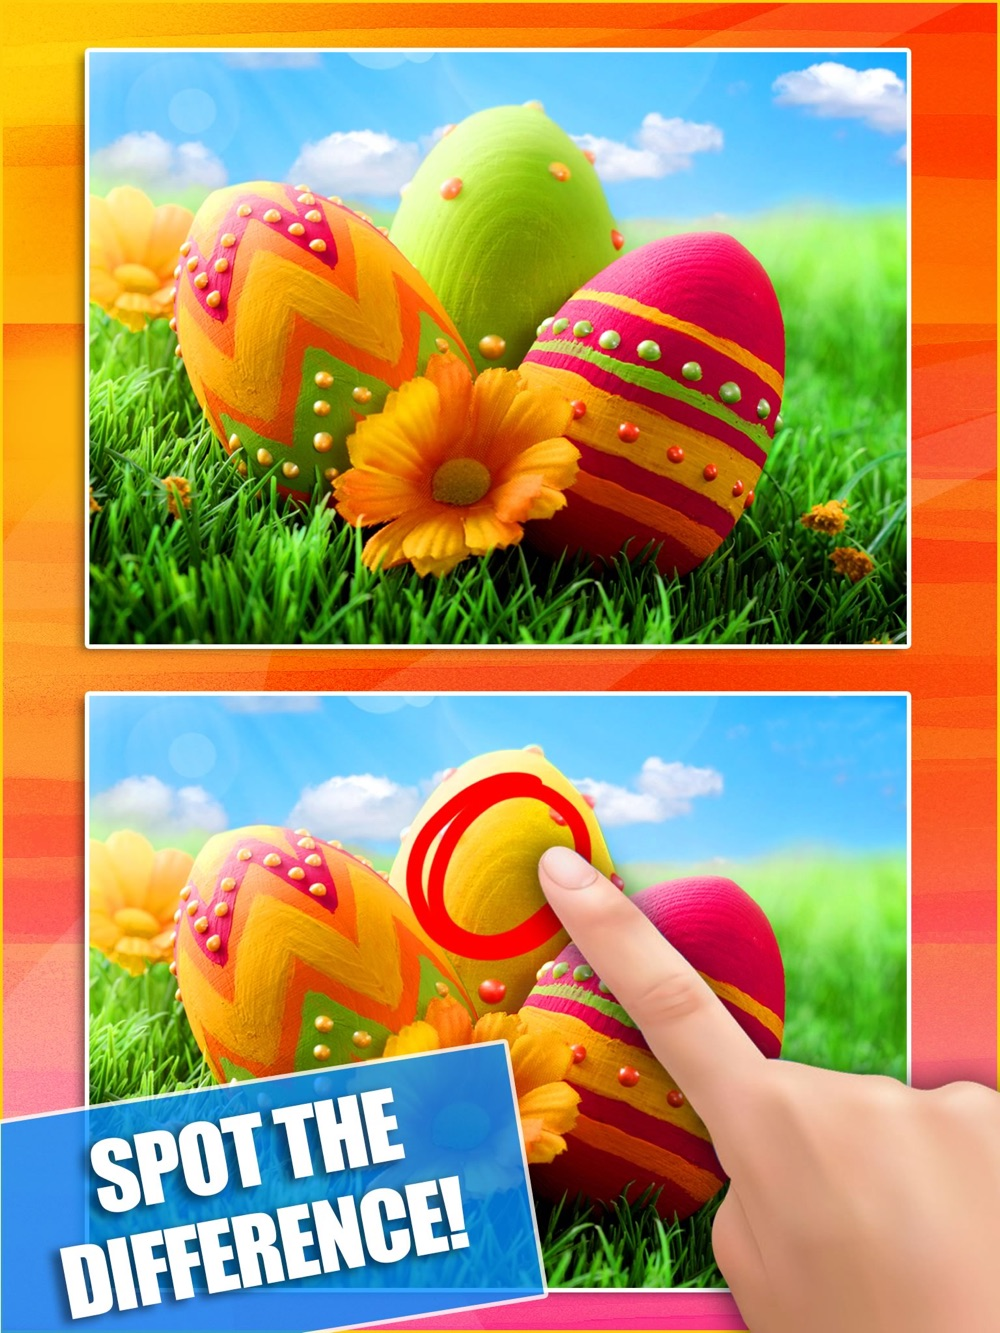 What's the Difference? HD ~ spot the differences·find hidden objects·guessing picture games Cheat Codes